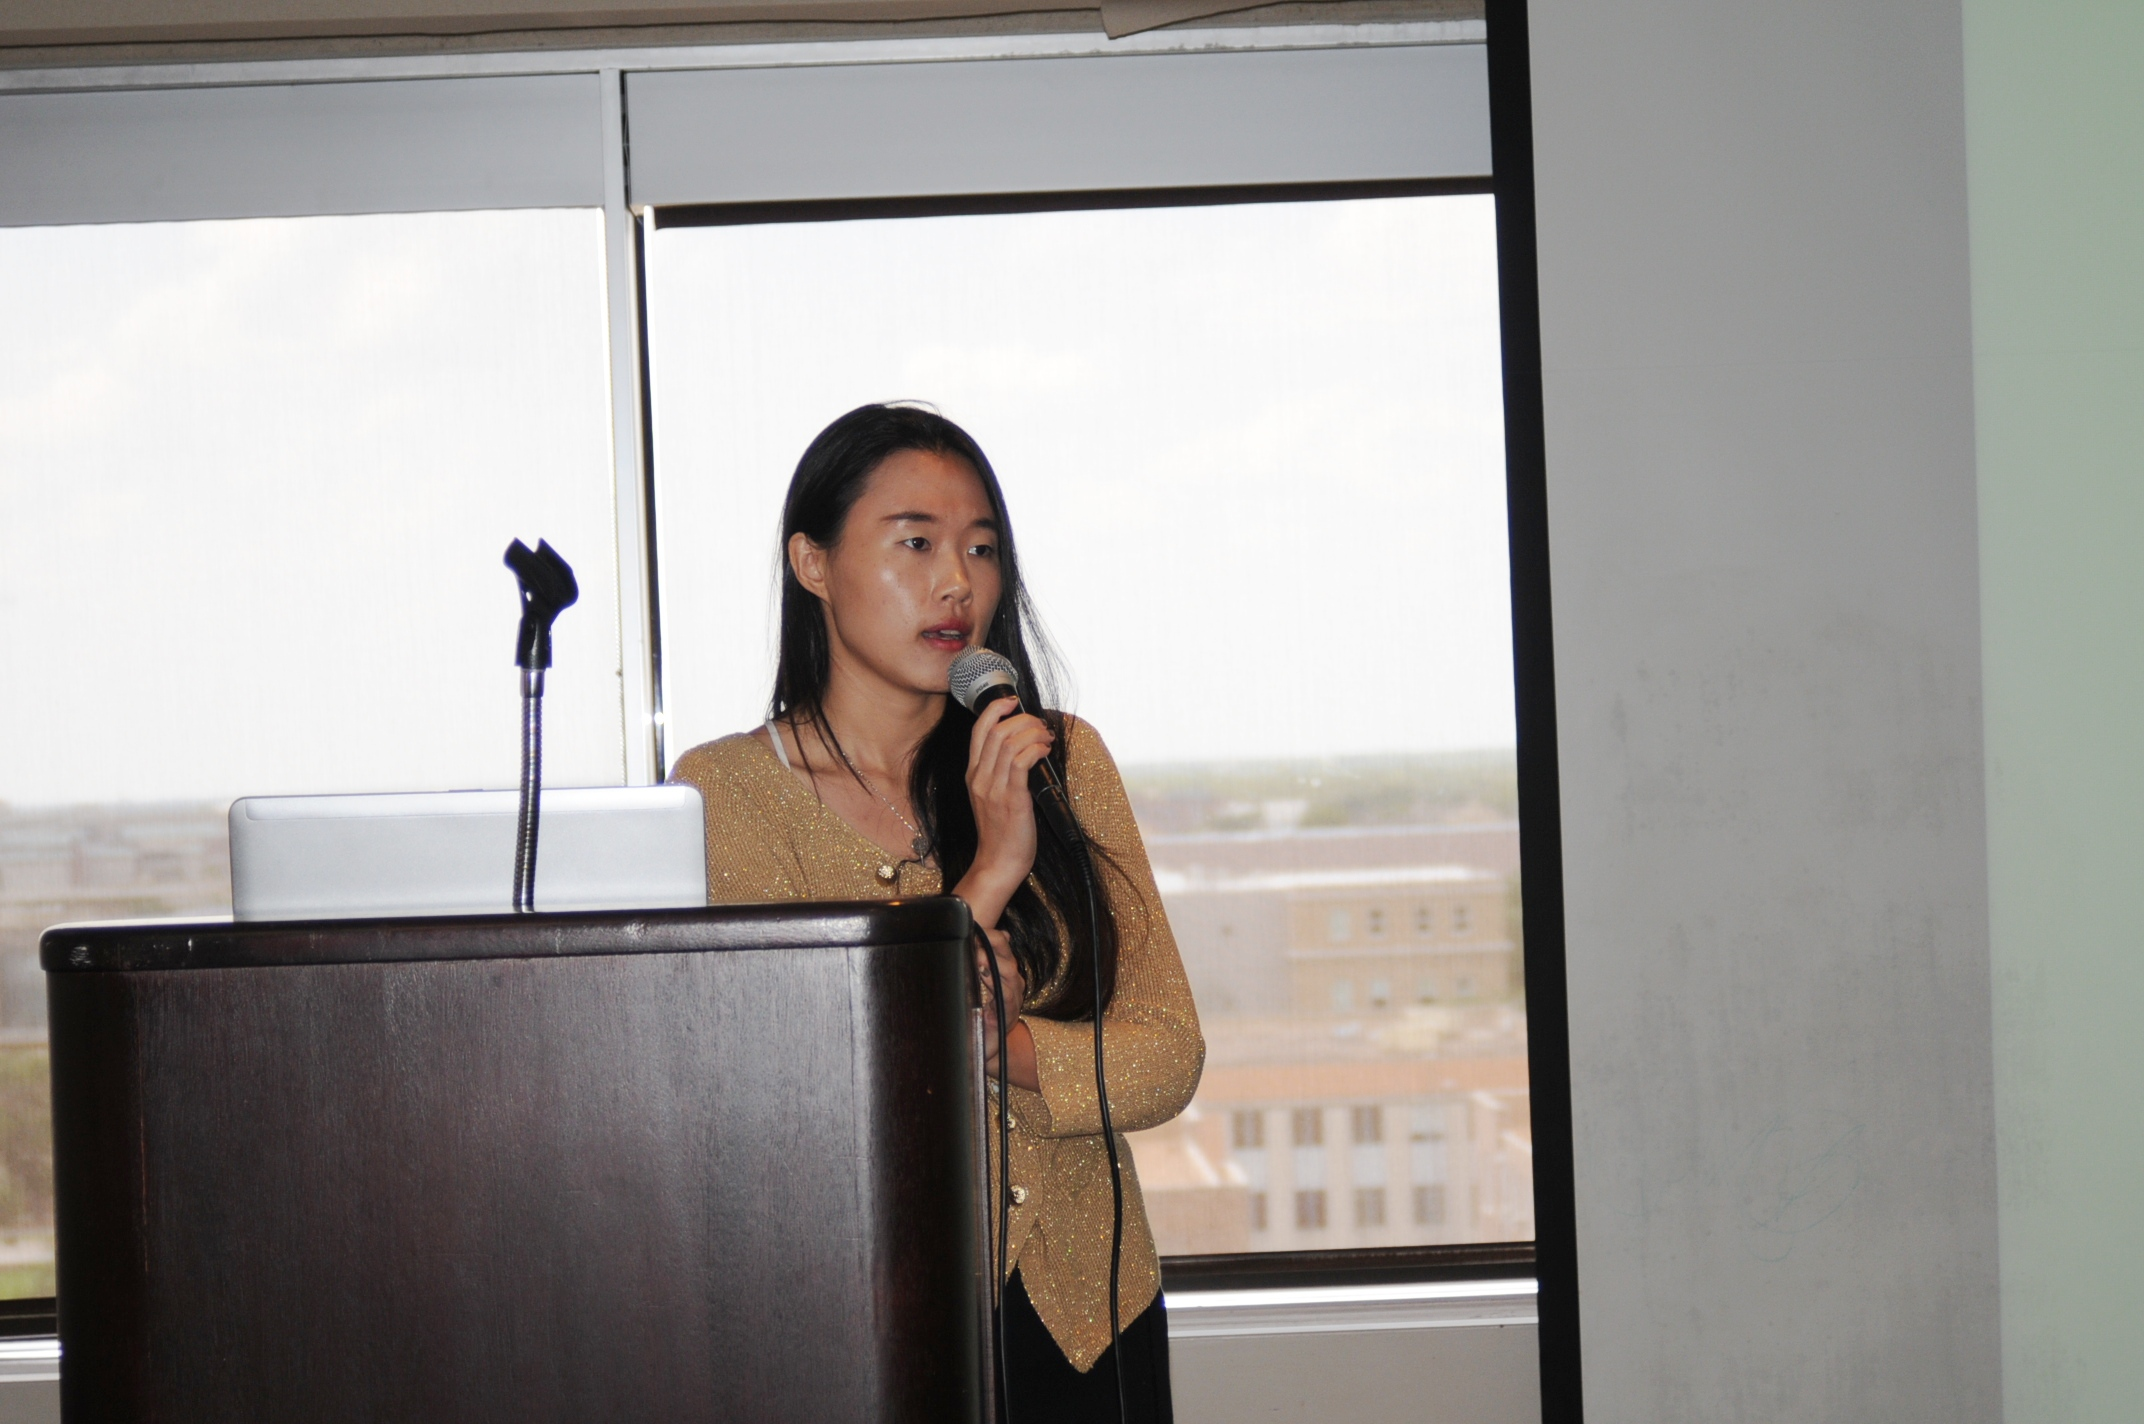 Ms. Qinxin Shi, PhD Candidate Texas A&M University